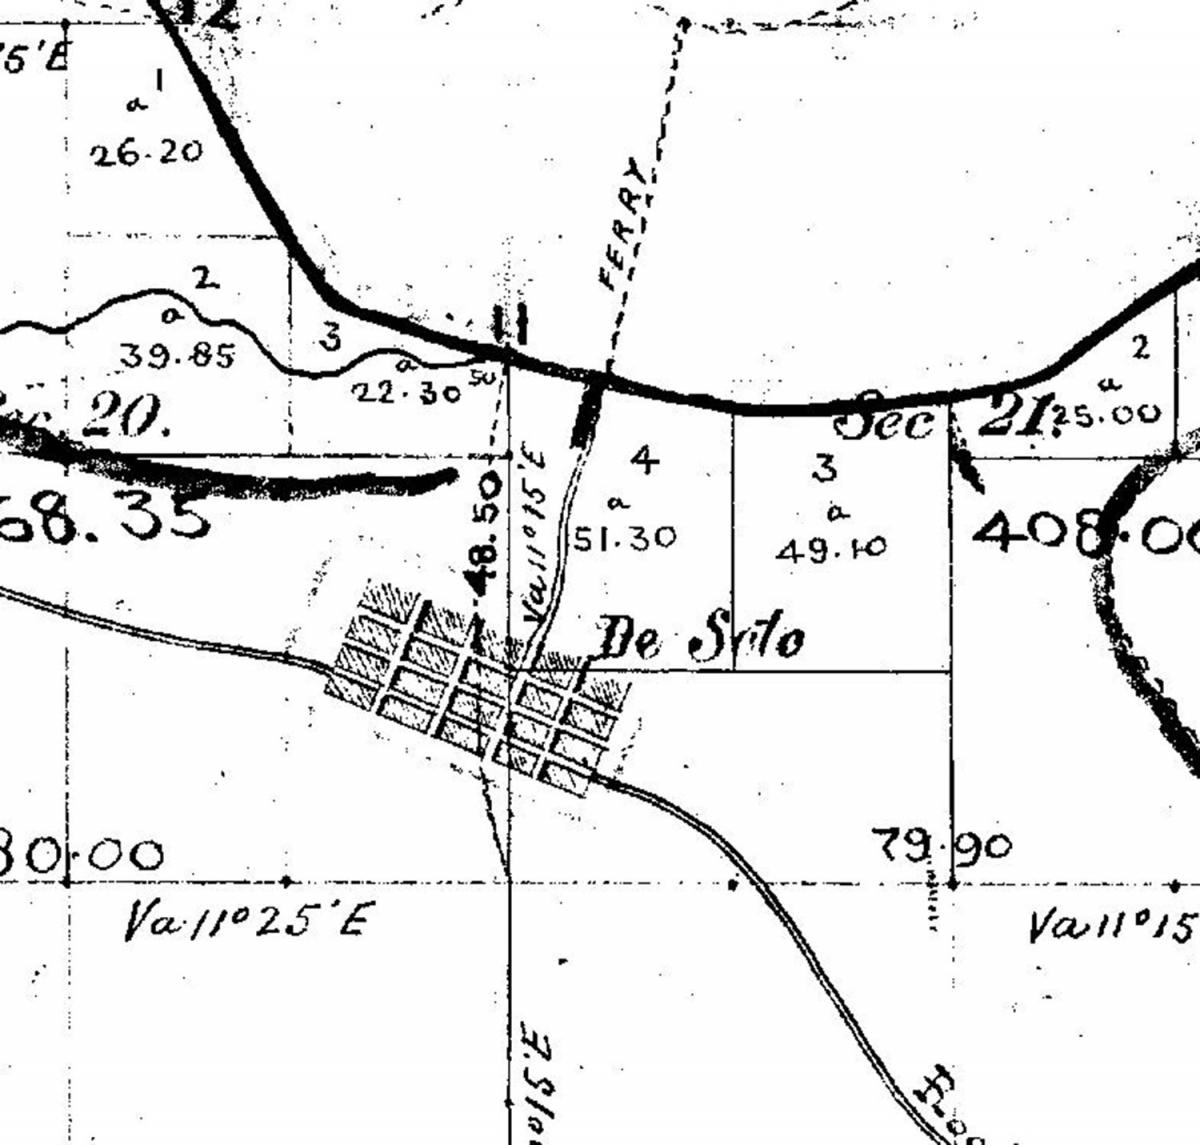 1856 GLO Survey plat map depicting the town of De Soto